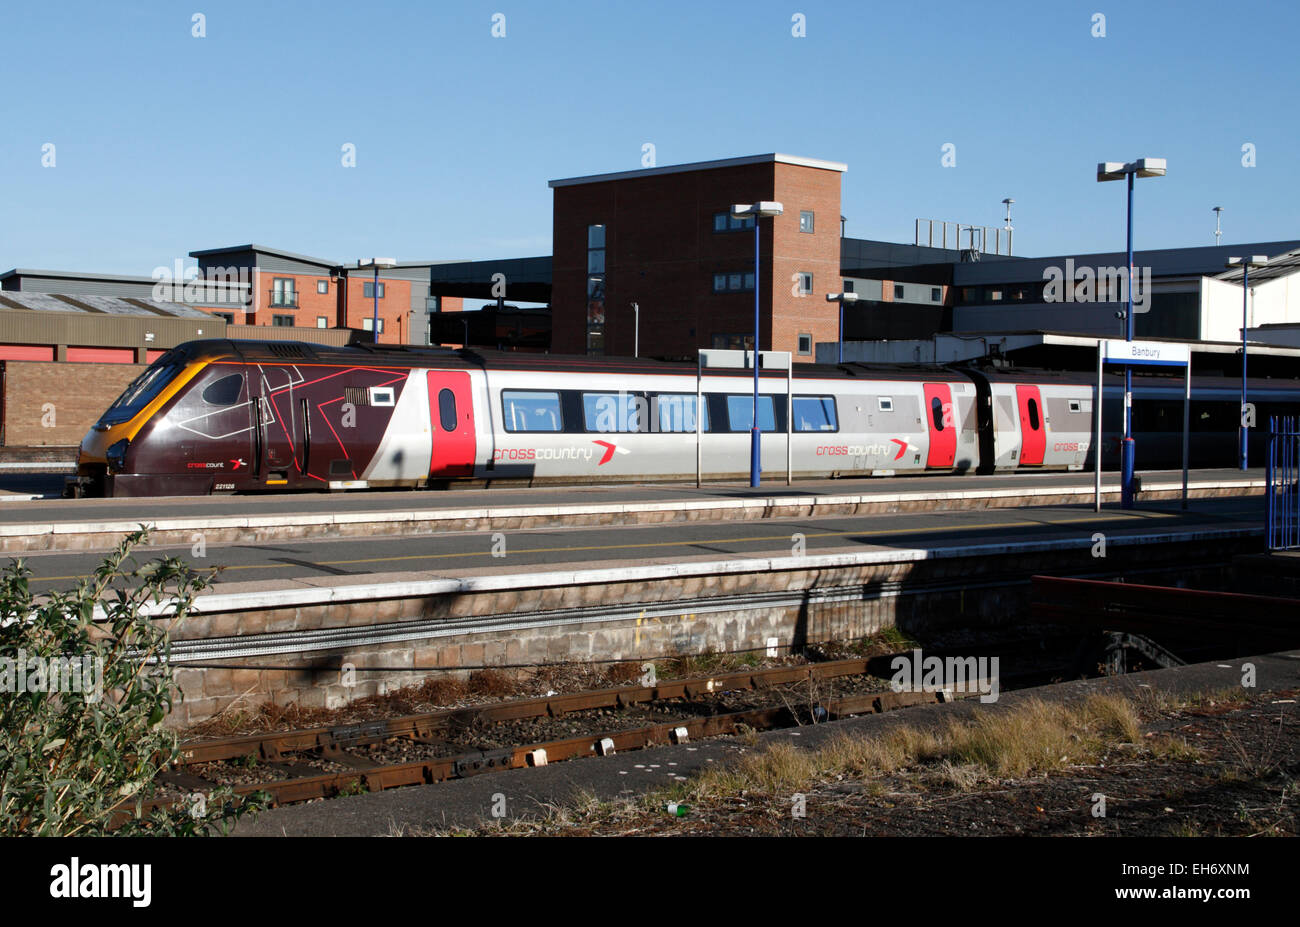 A Cross Country Super Voyager train at Banbury railway station in Oxfordshire, England - Stock Image